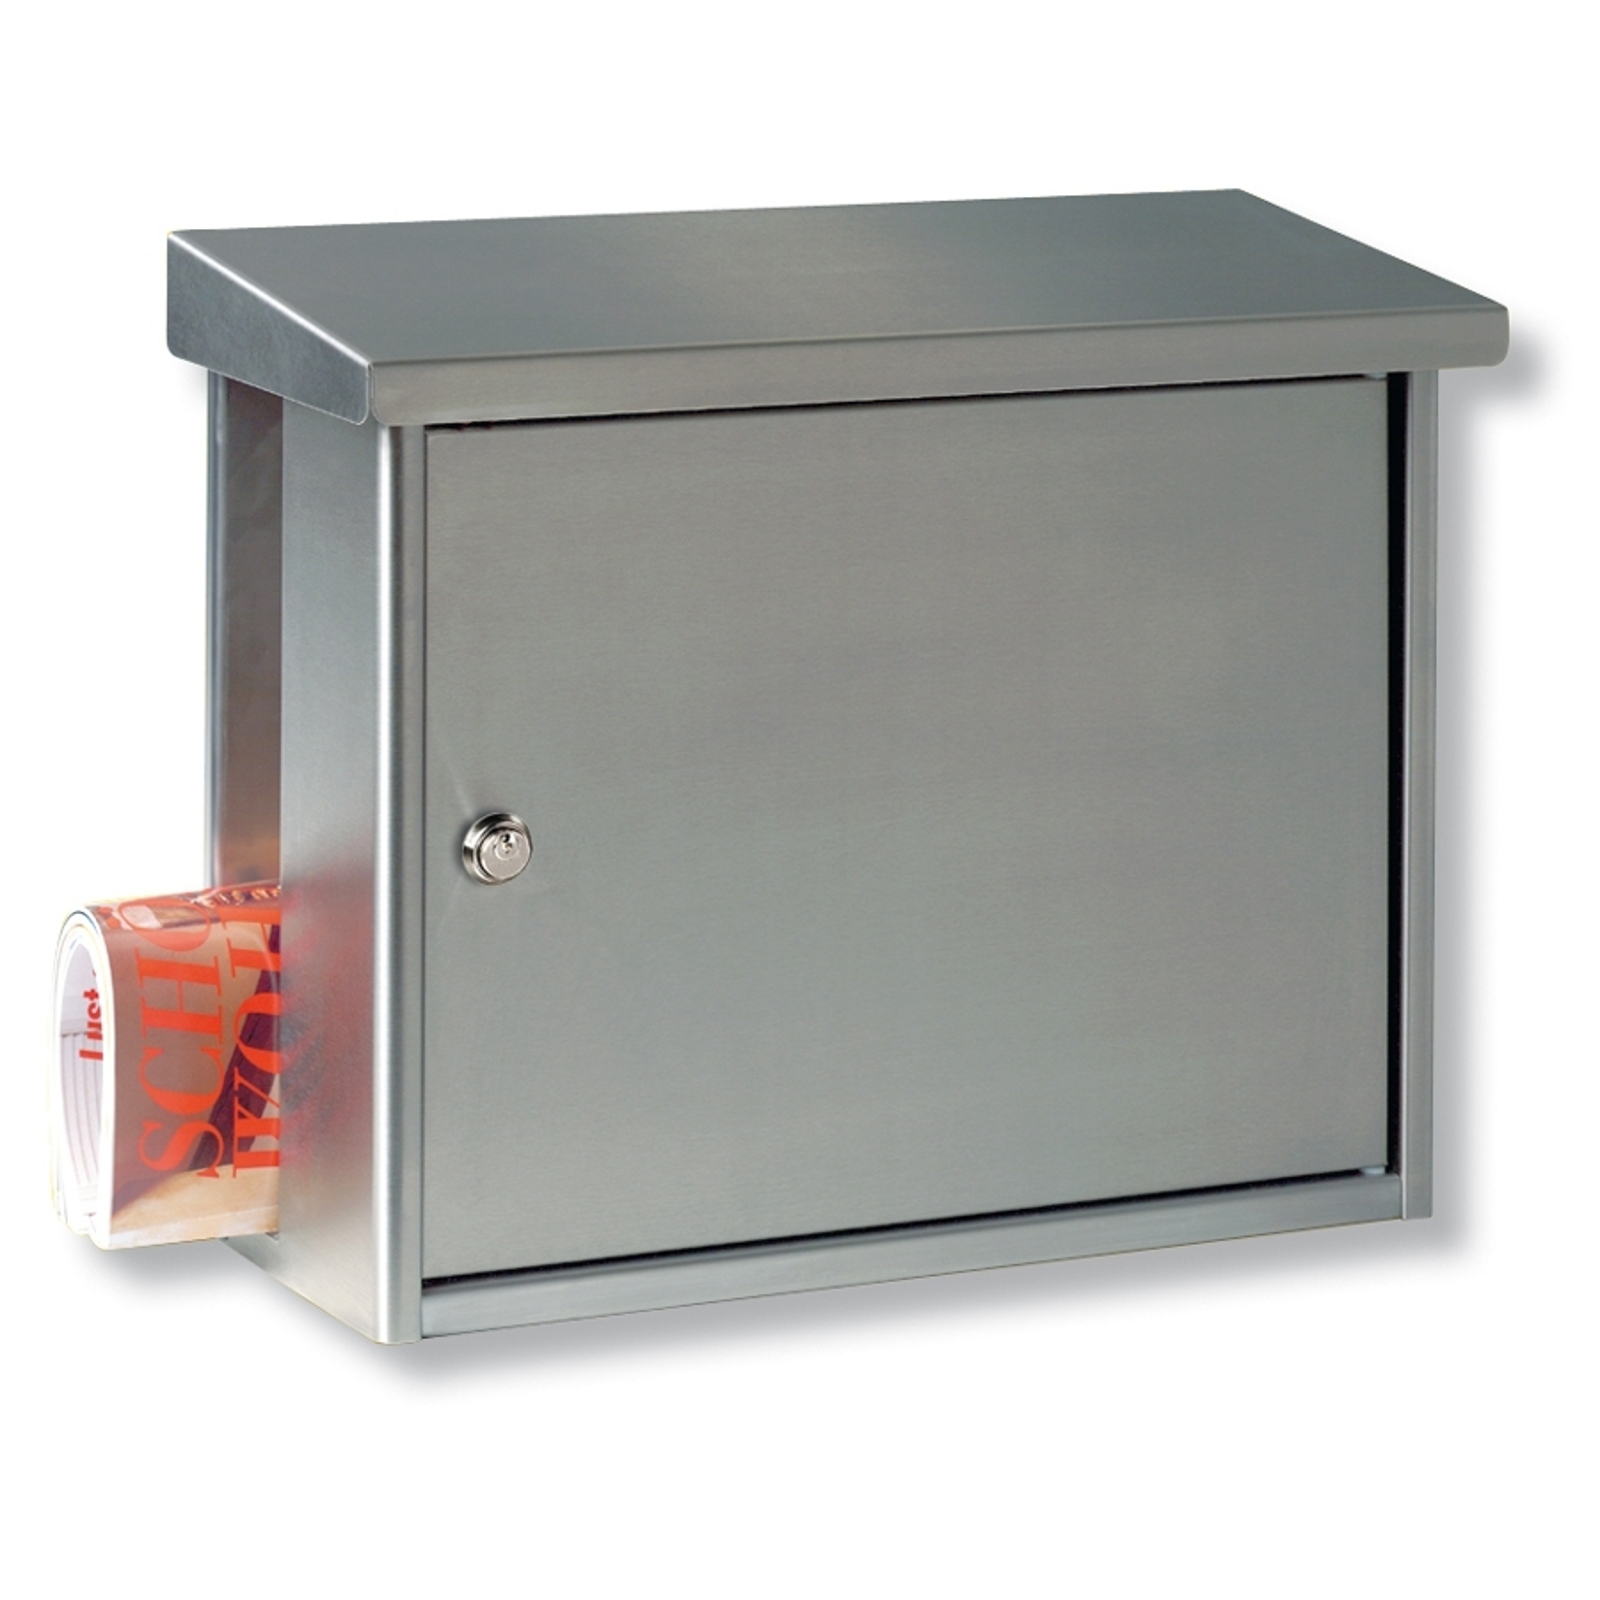 Classic Hanseatic stainless steel letterbox_1532025_1